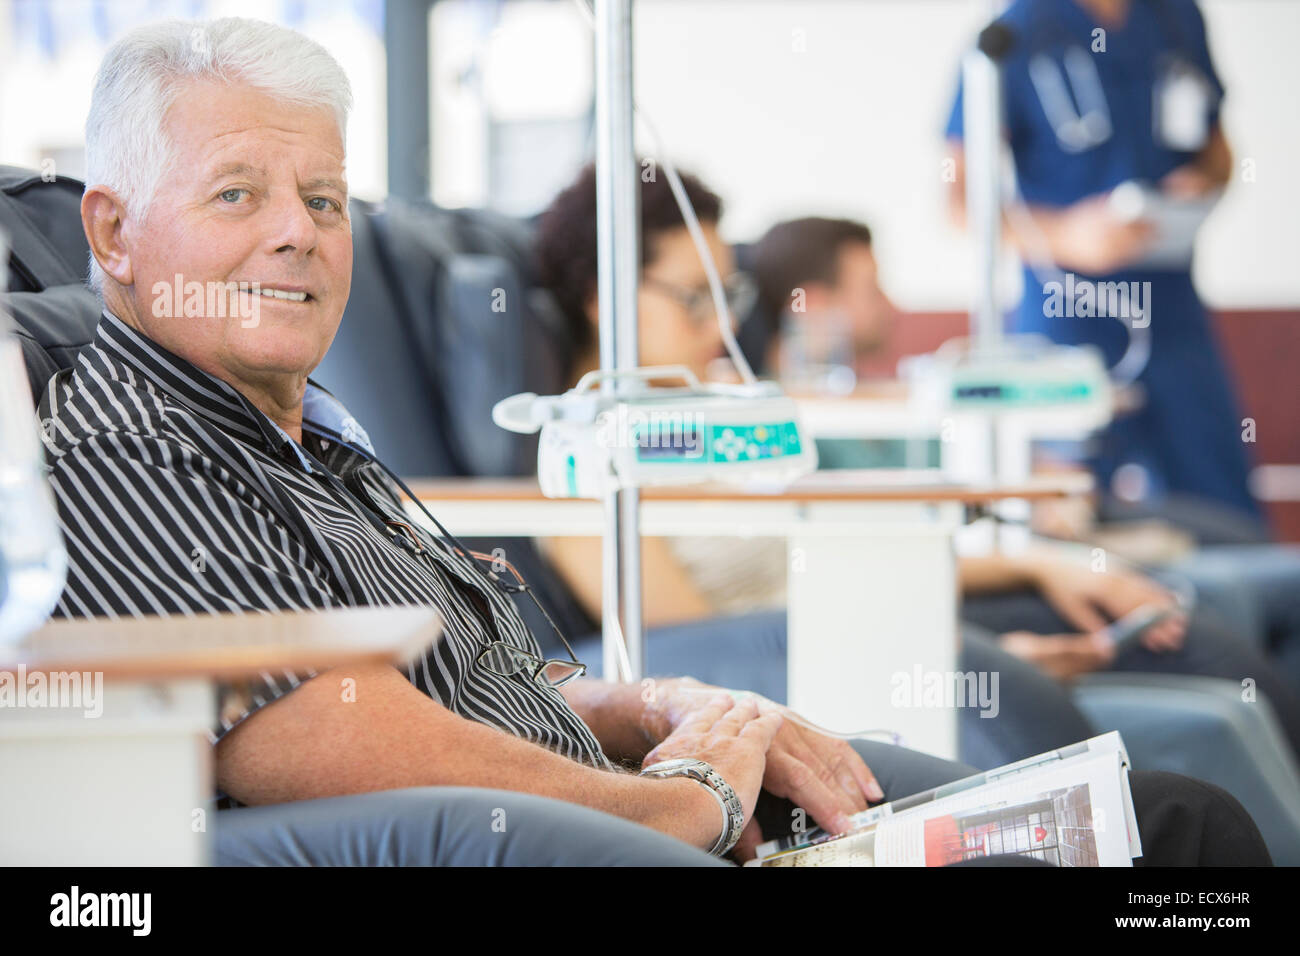 Smiling man undergoing medical treatment in outpatient clinic - Stock Image